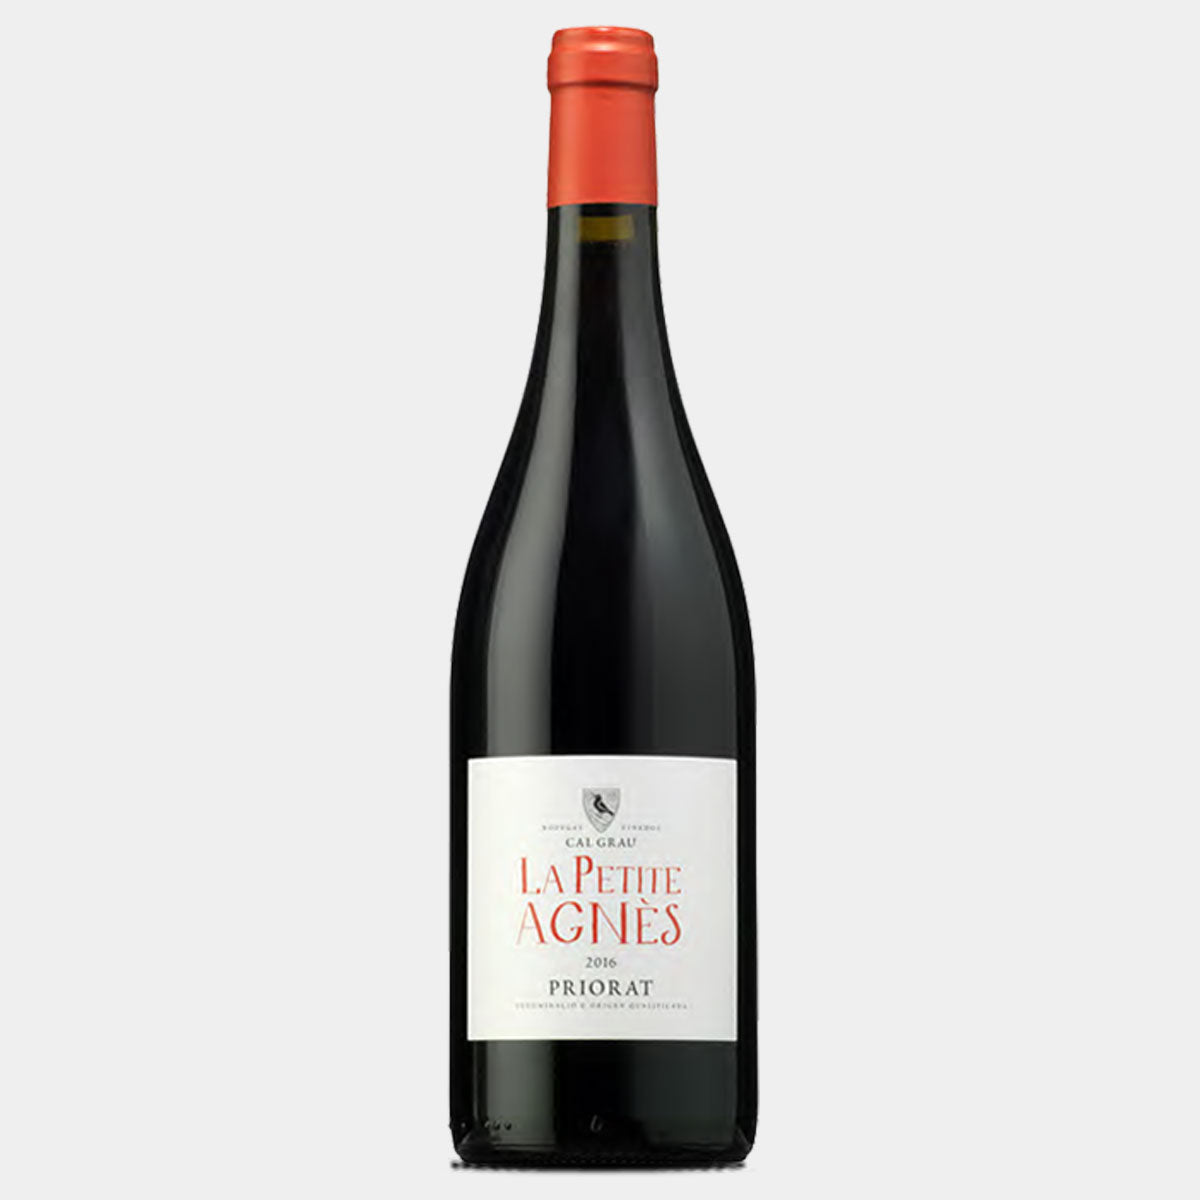 La Petite Agnes - Wines and Copas Barcelona